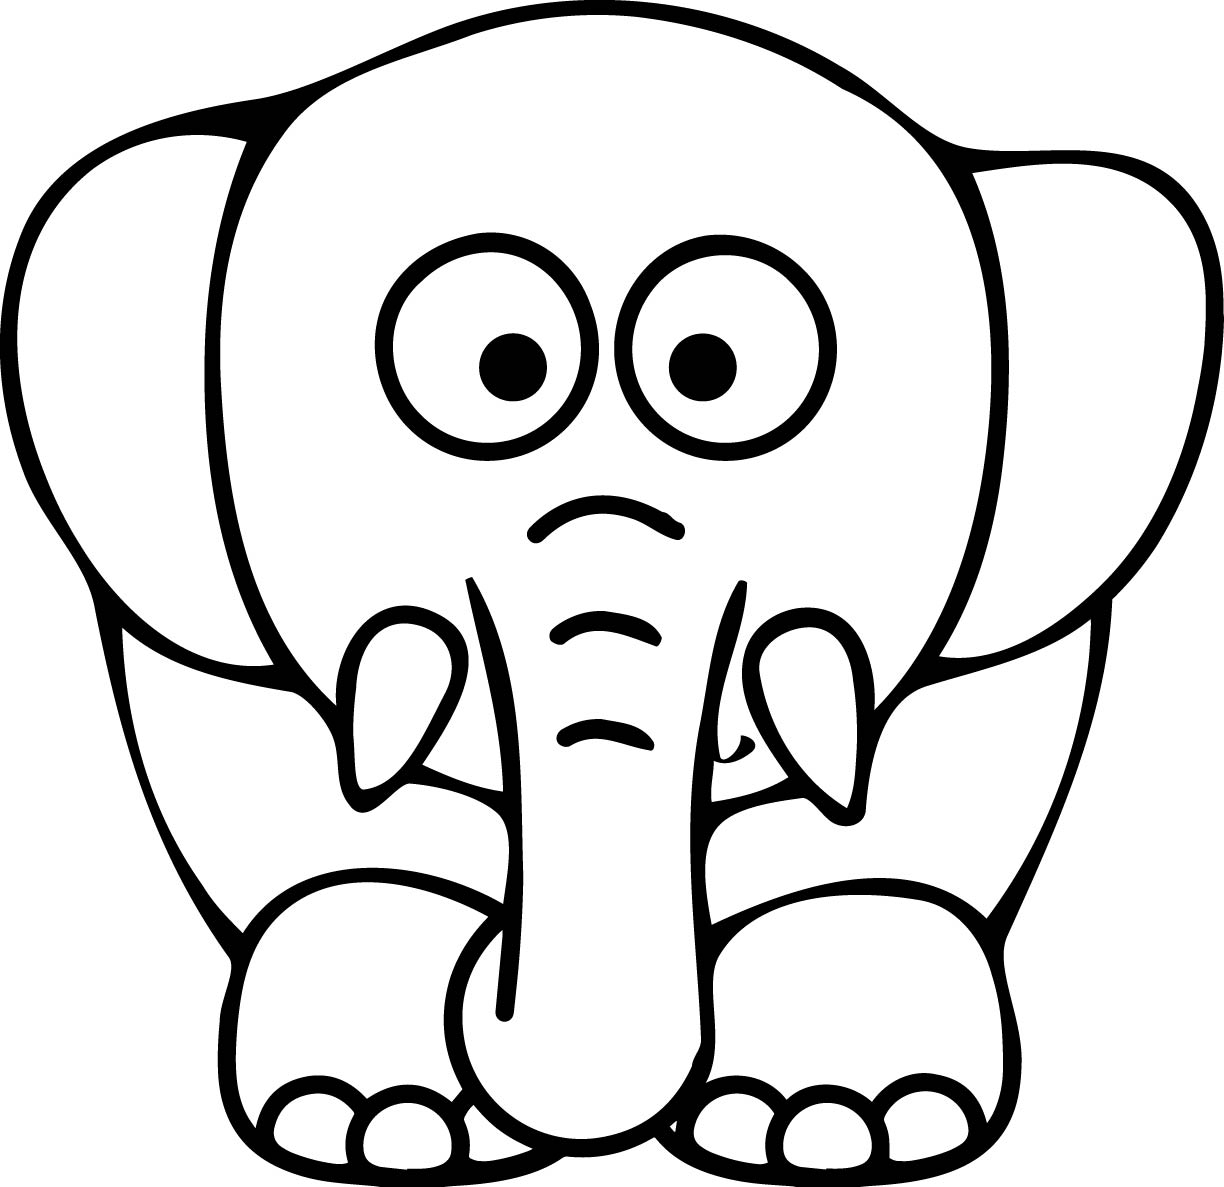 1224x1187 Elephant Face Coloring Page